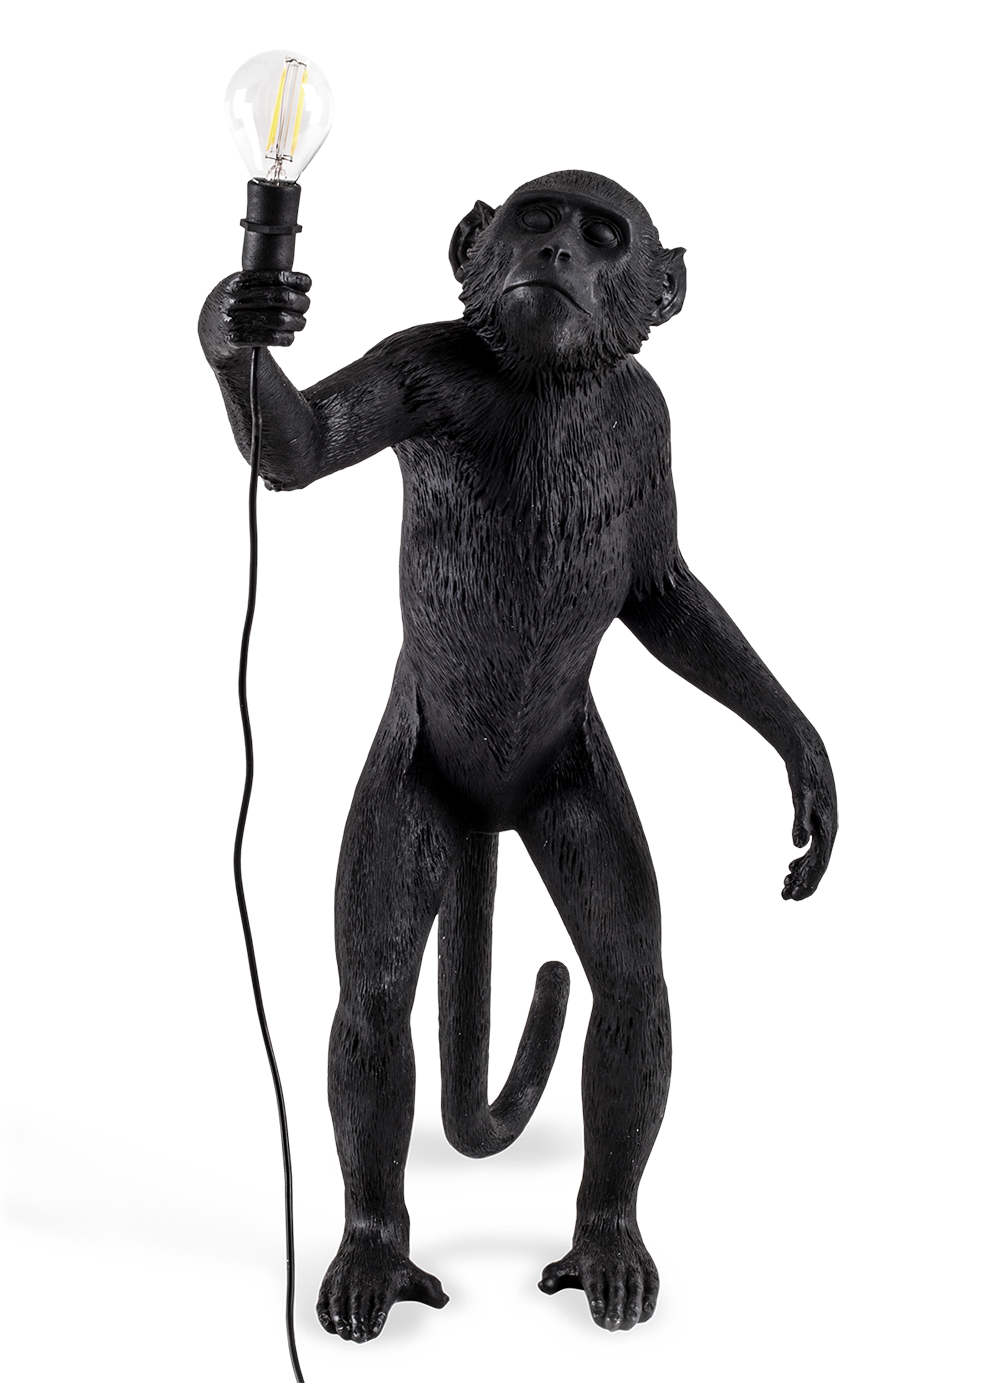 Monkey. Seletti outdoor lamp standing